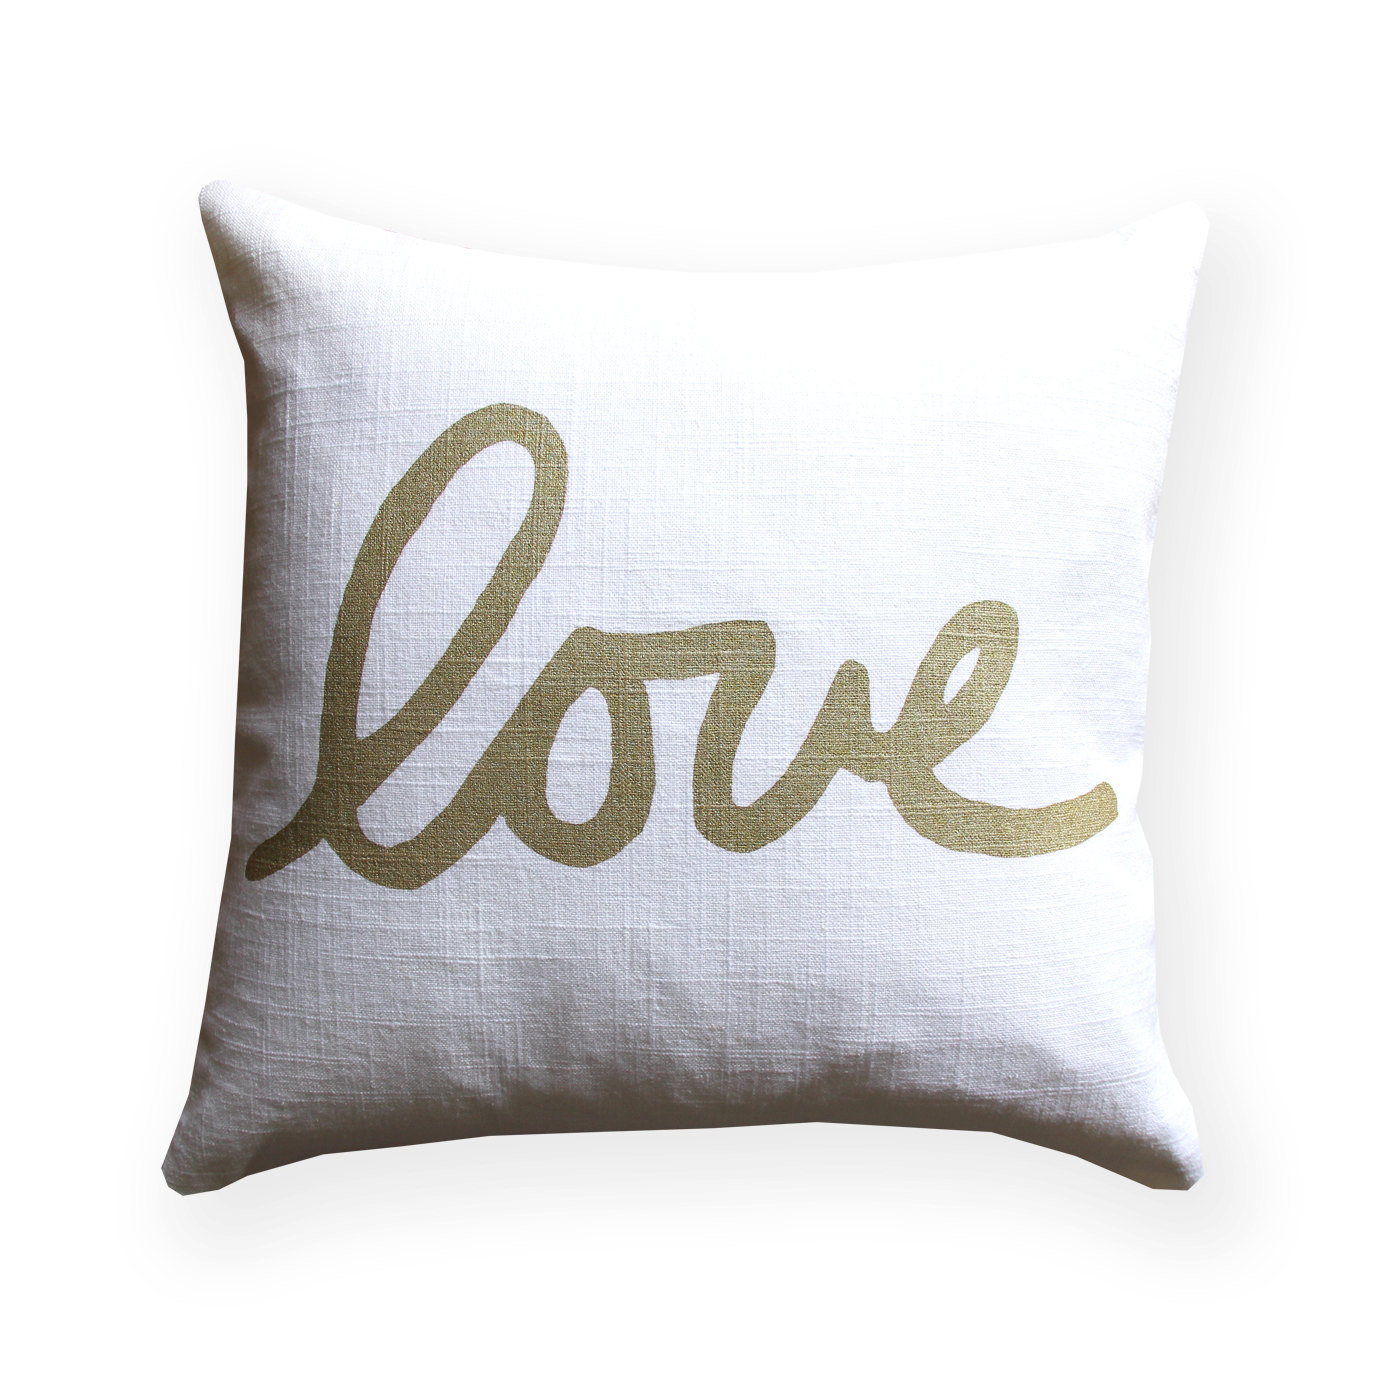 Gold Throw Pillows | Grey Throw Pillows | Large Throw Pillows